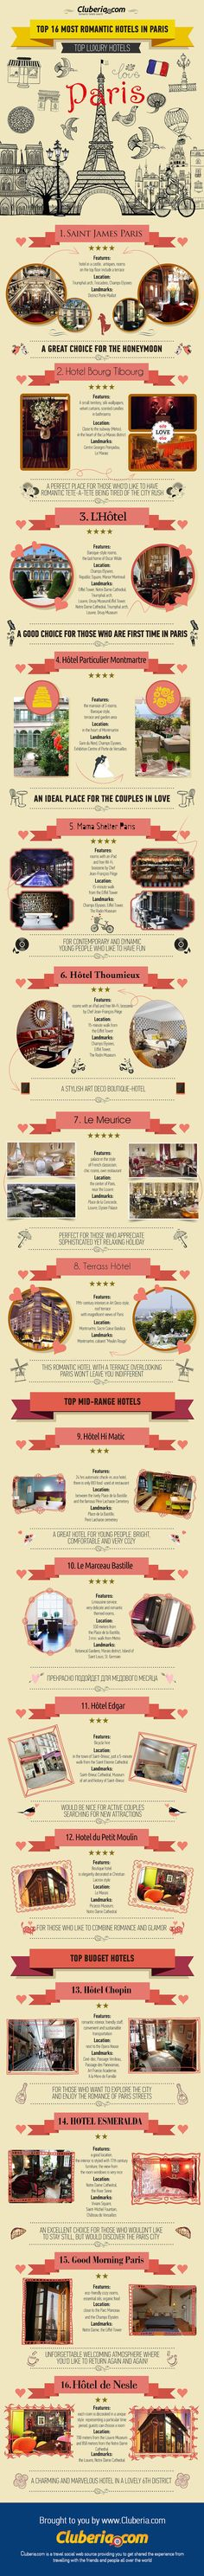 SUITE LOVE | The Most Romantic Hotels In Paris Infographic - It's arguably the most romantic city in the world. Plot your perfect city break to Paris with the help of this guide to 16 of the city's most romantic pieds-à-terre. I suppose you could say they're the cream of the crop for canoodling in the city of love. Read the full post on Back to Buckley...